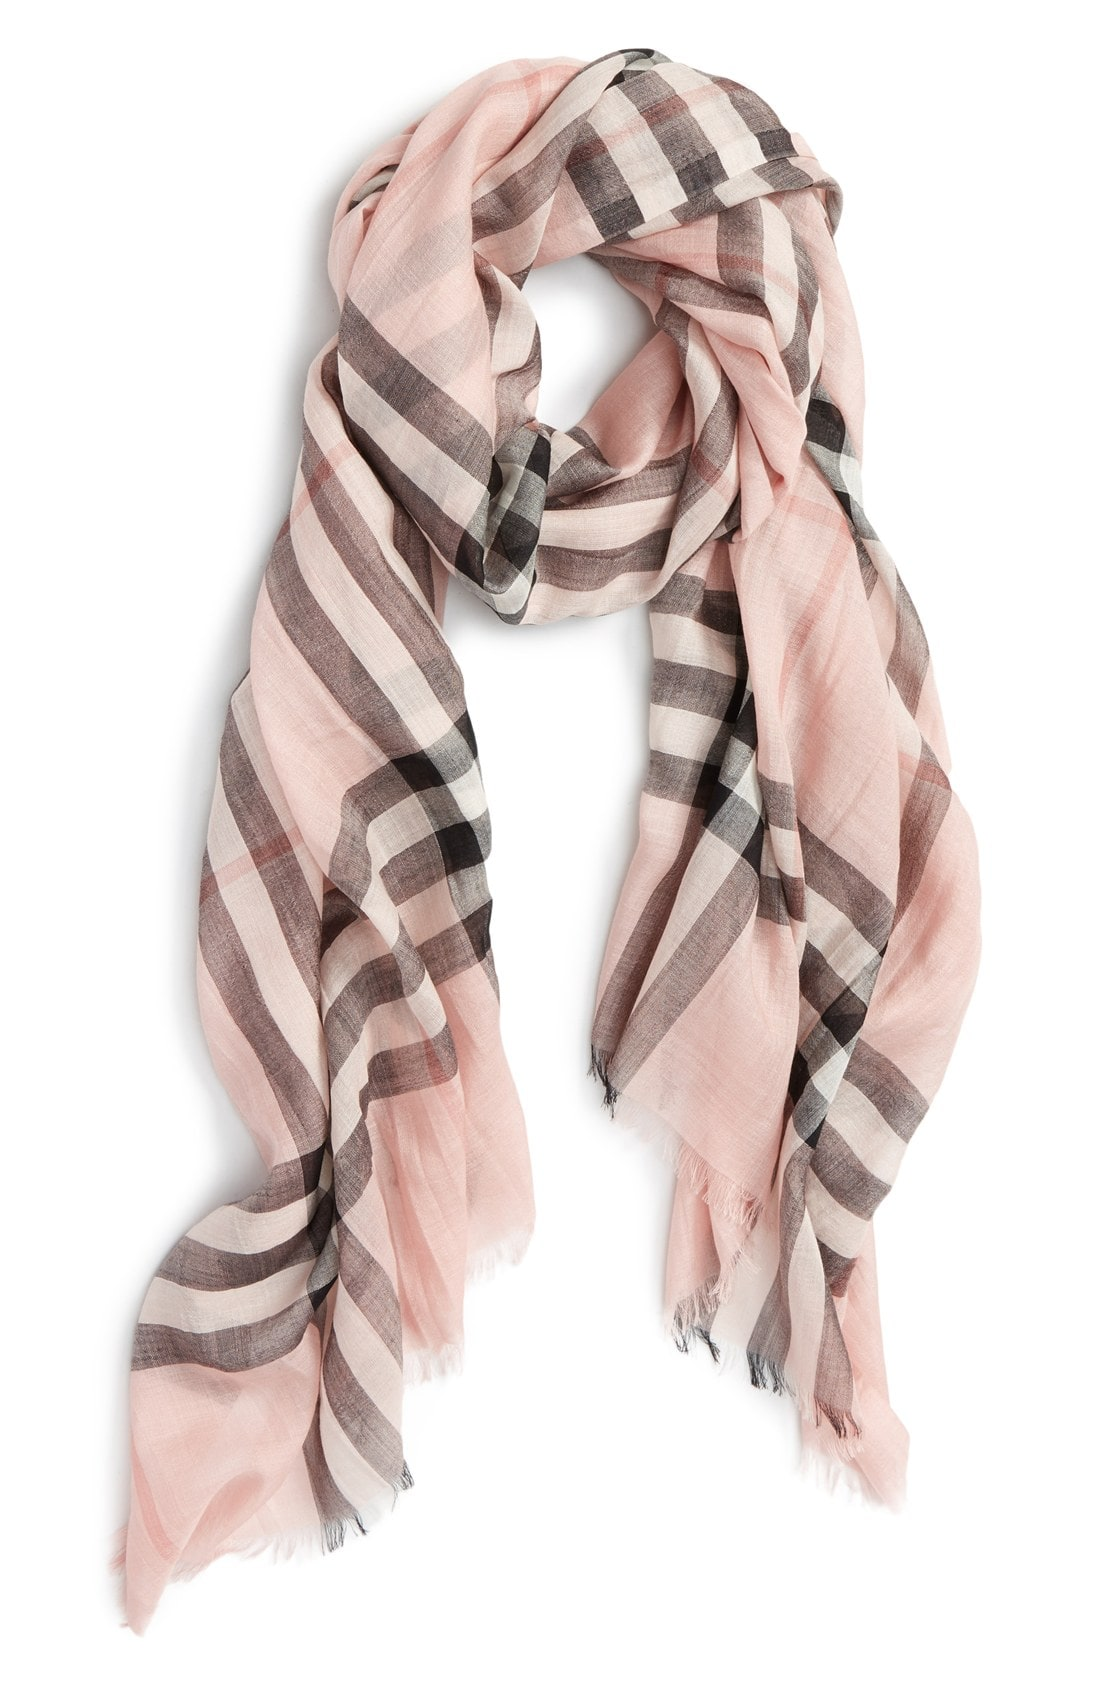 With the scarf in pink simple outfits beautify feminine